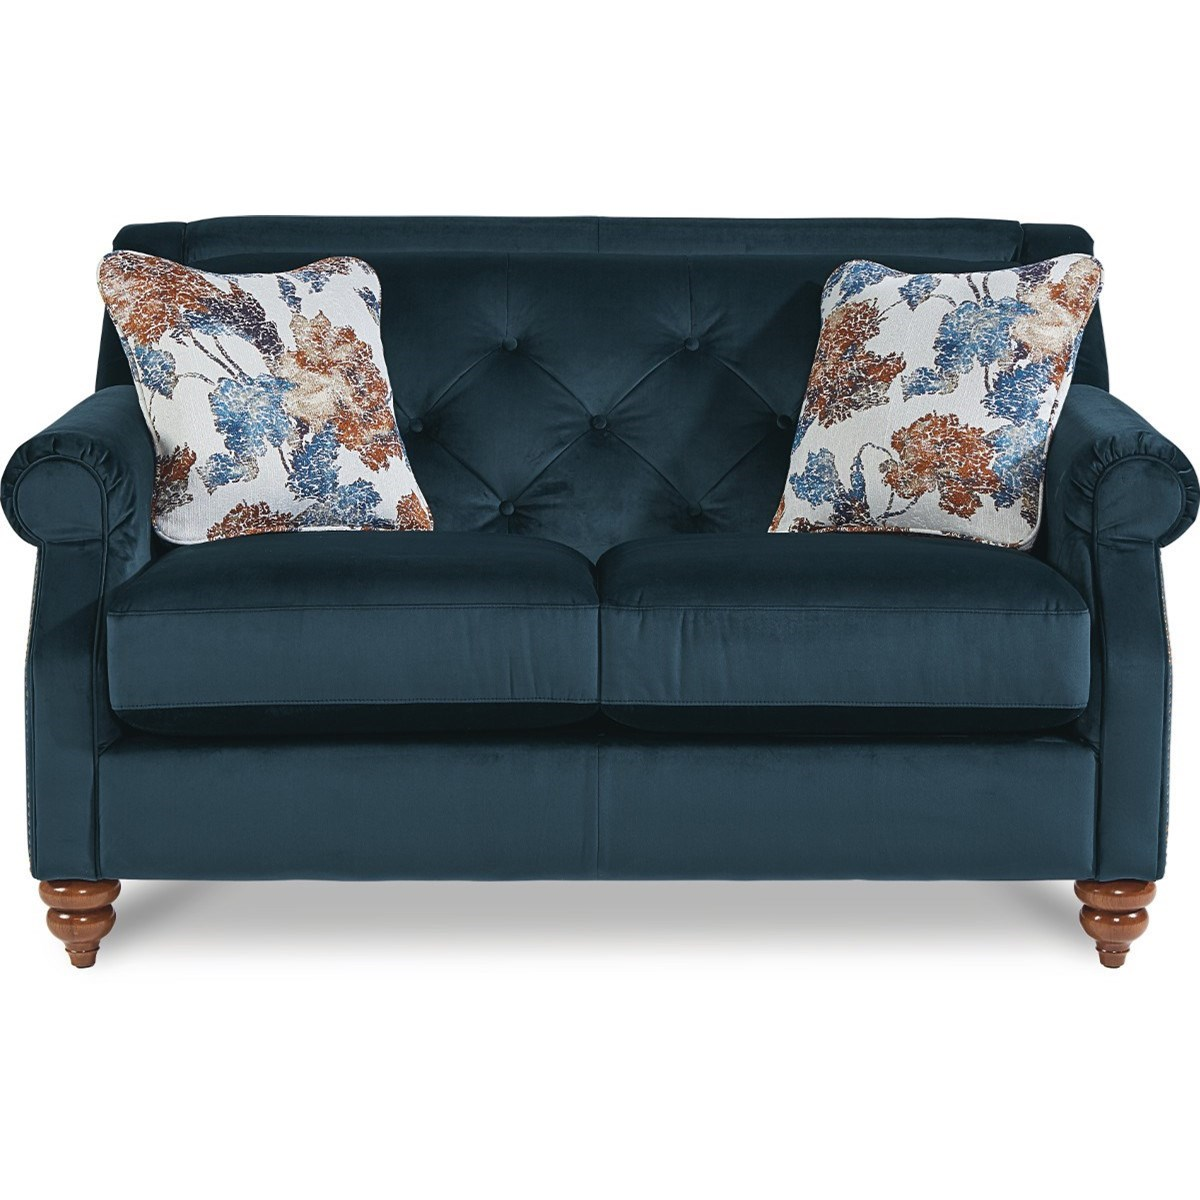 Aberdeen Loveseat by La-Z-Boy at Fisher Home Furnishings